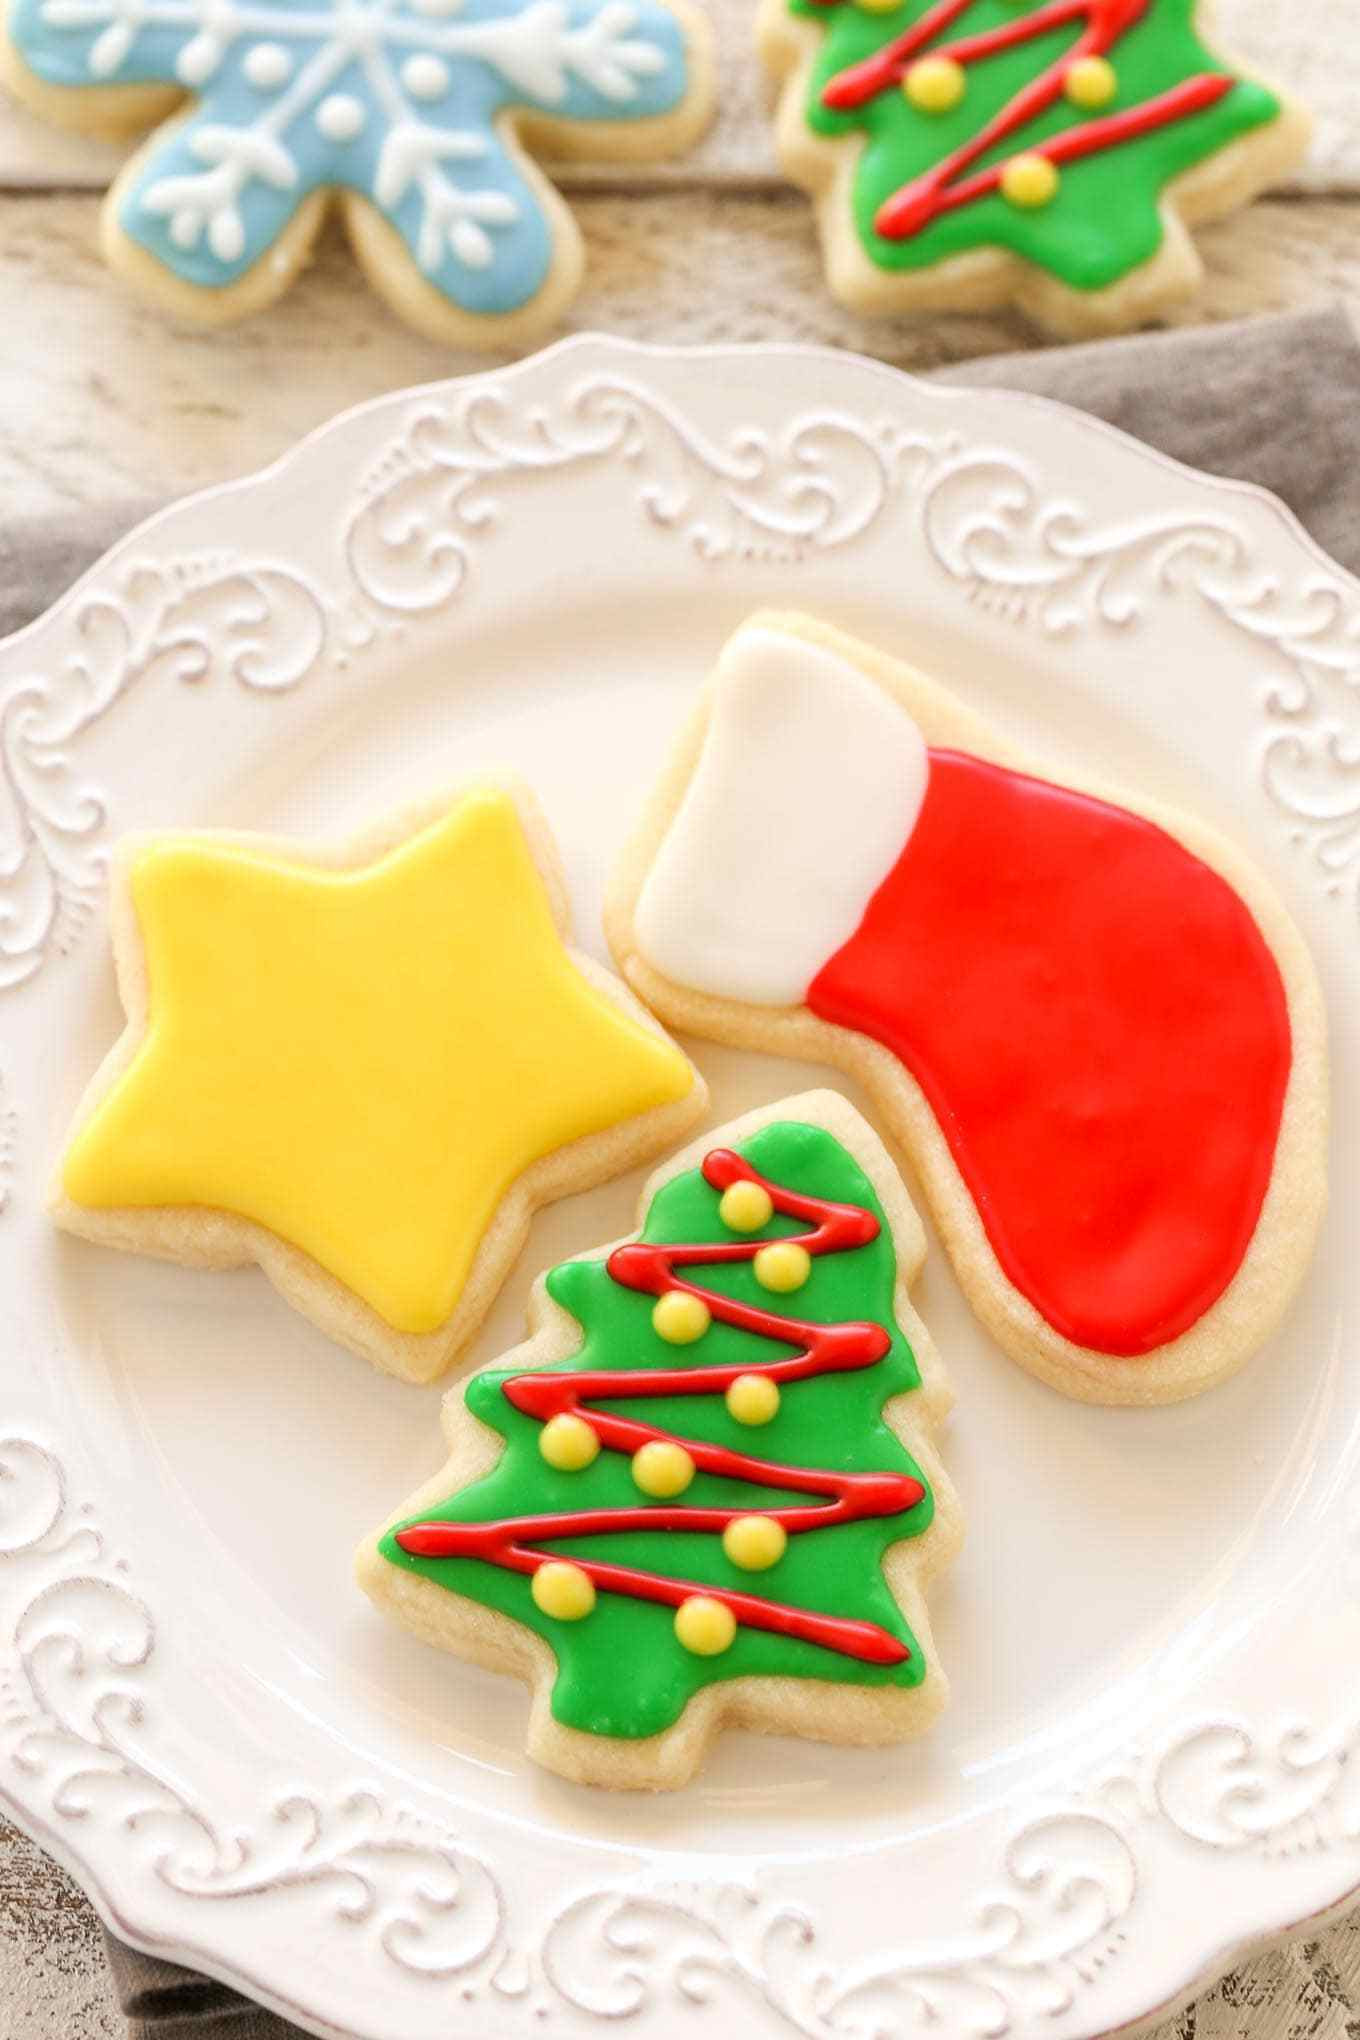 Easy Christmas Sugar Cookies Recipes  Soft Christmas Cut Out Sugar Cookies Live Well Bake ten